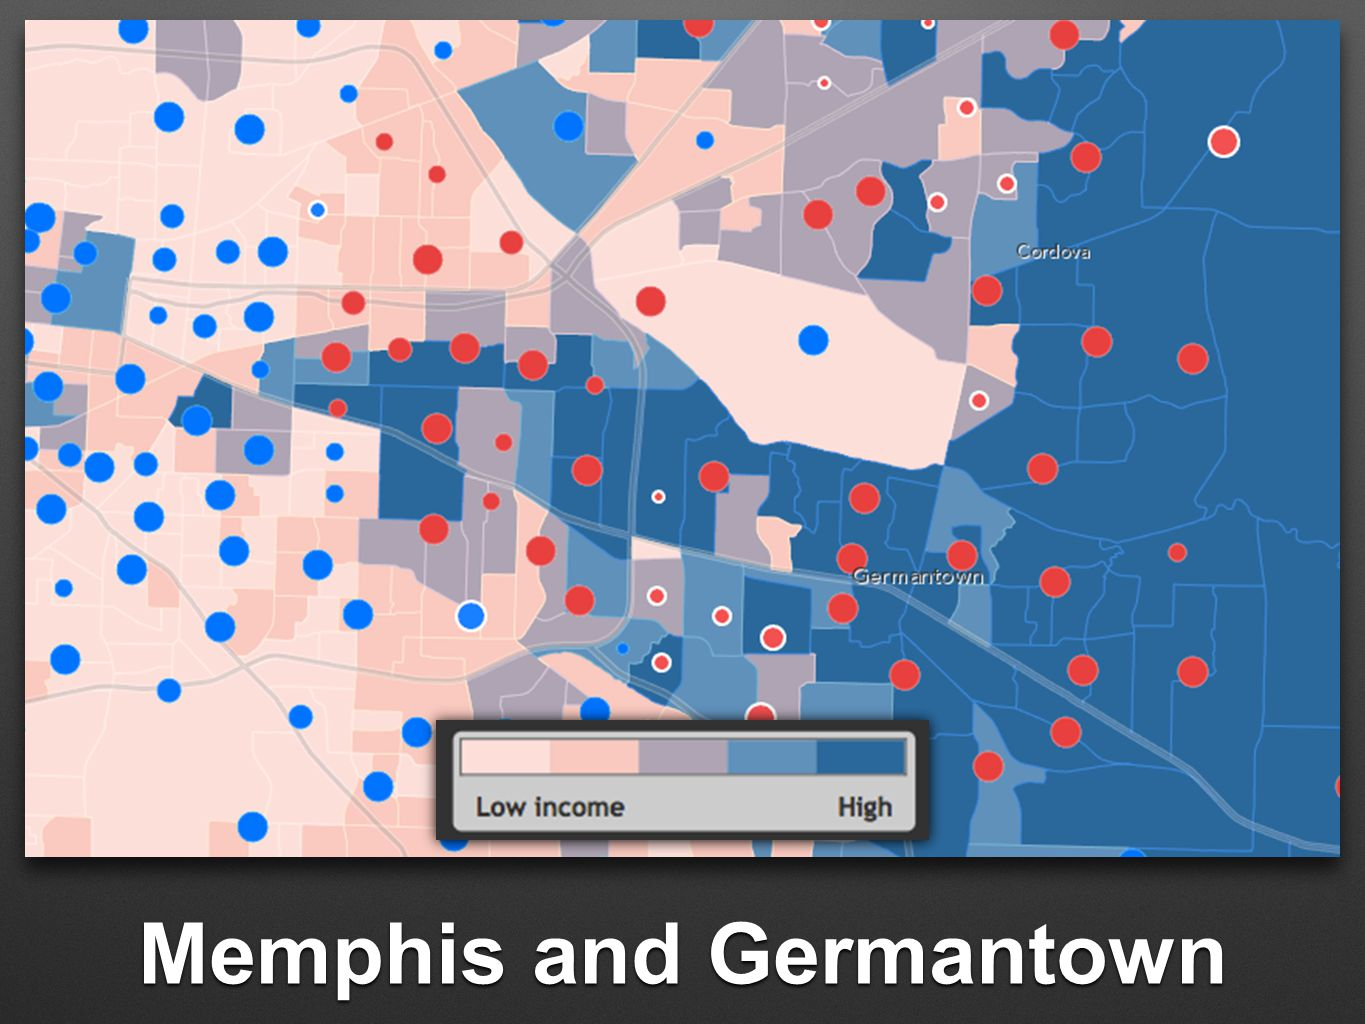 Memphis and Germantown